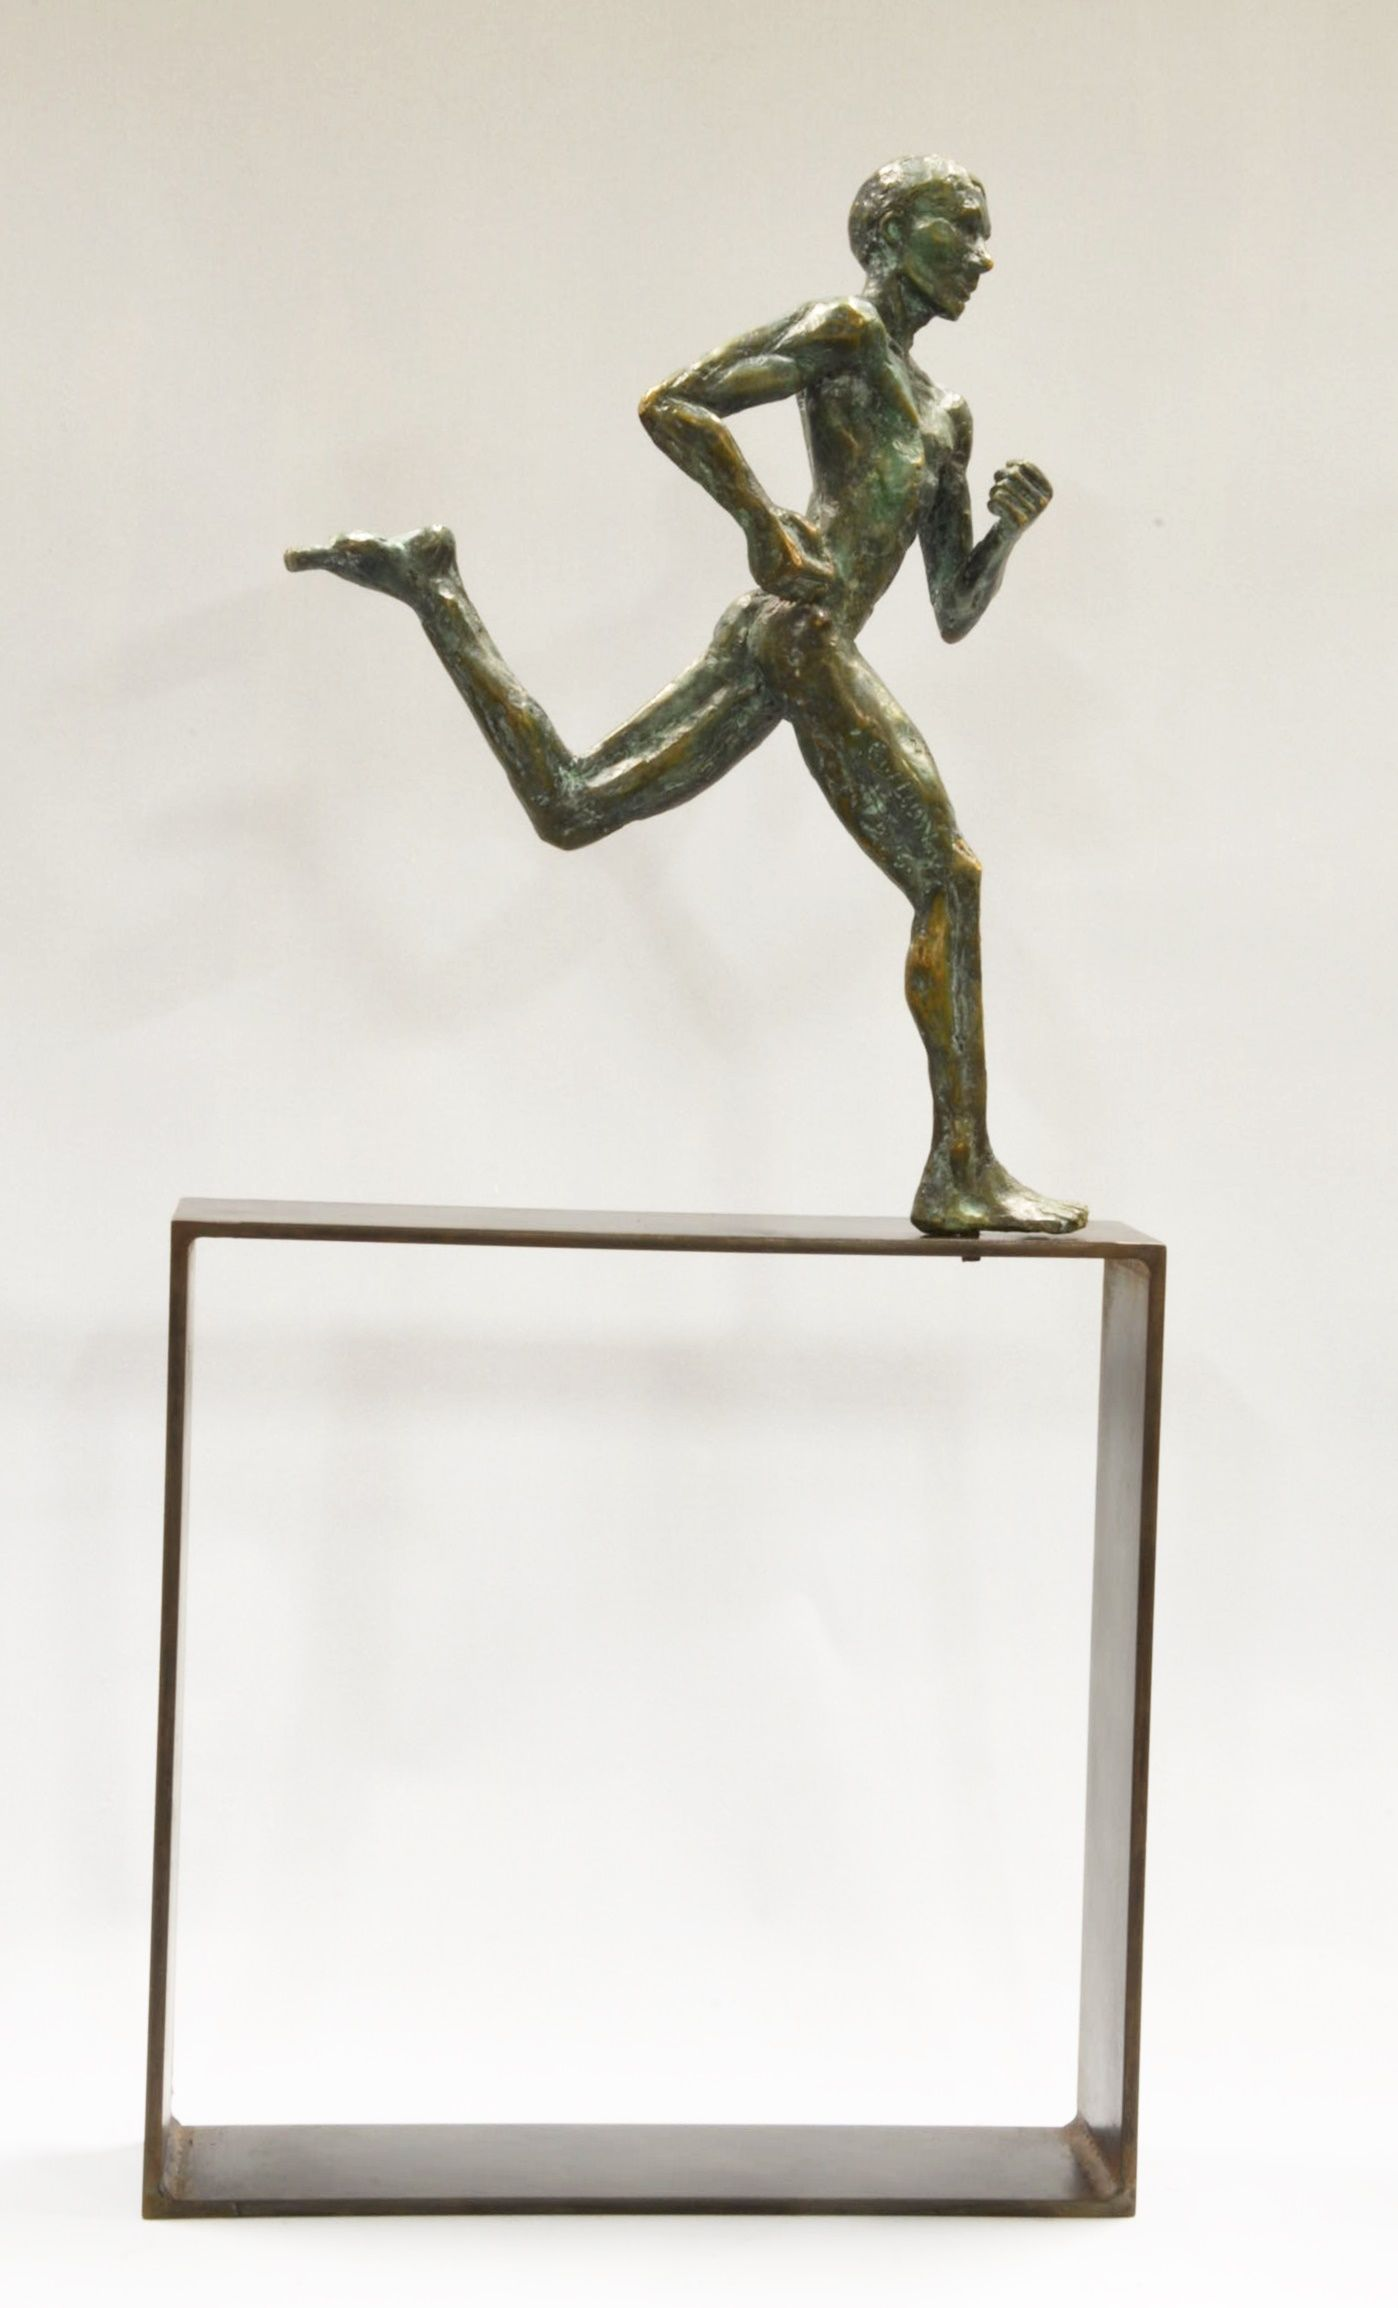 Runner Marathon,Yann Guillon,Sculpture, detail 4